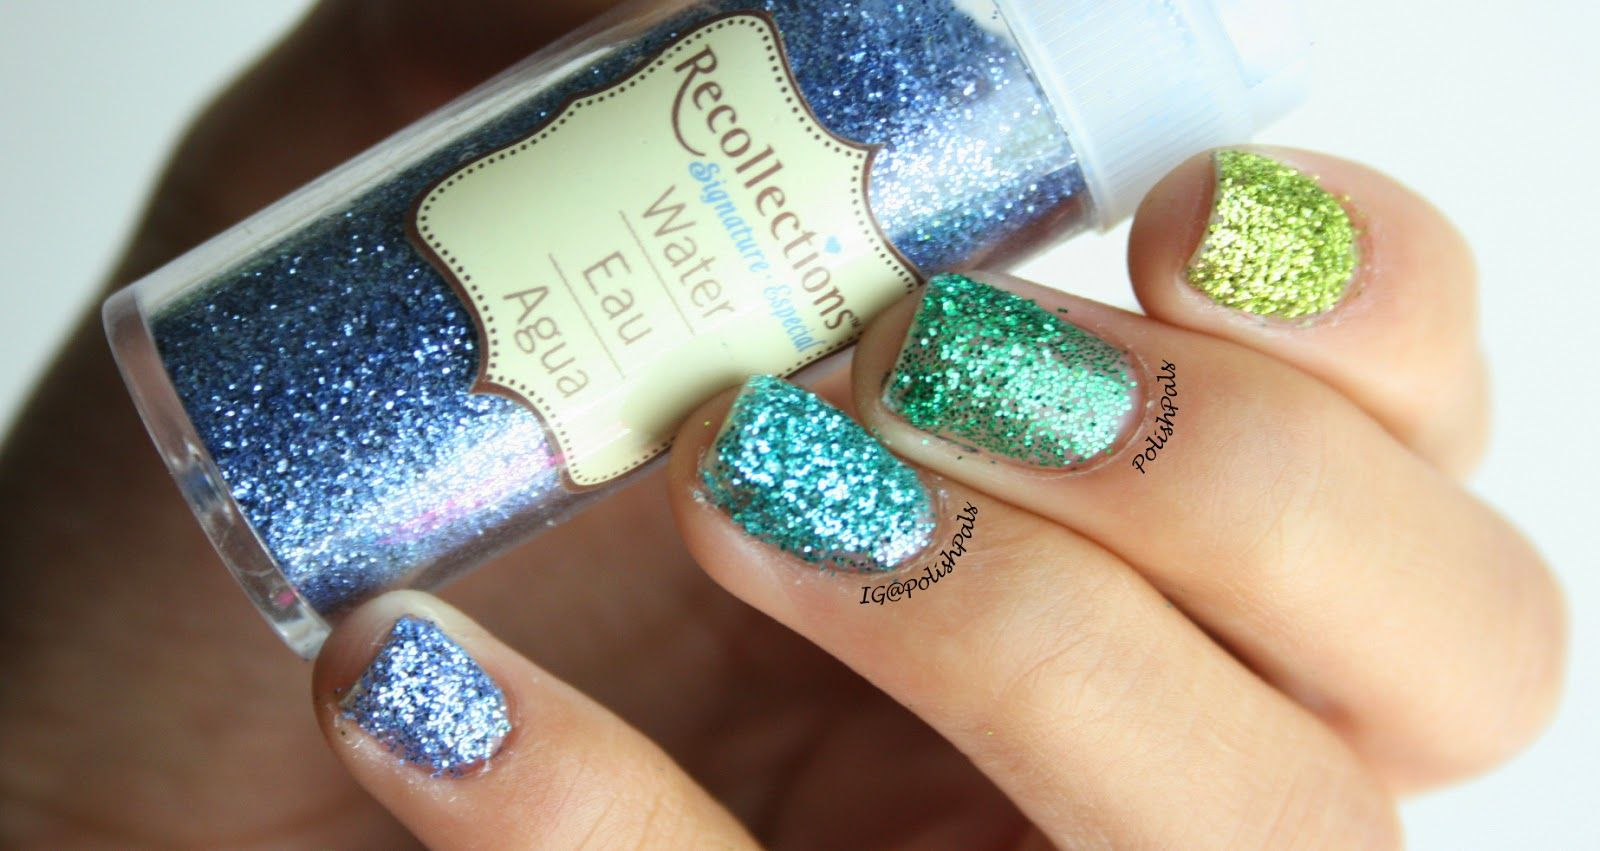 Nail Polish With Loose Glitter - To Bend Light